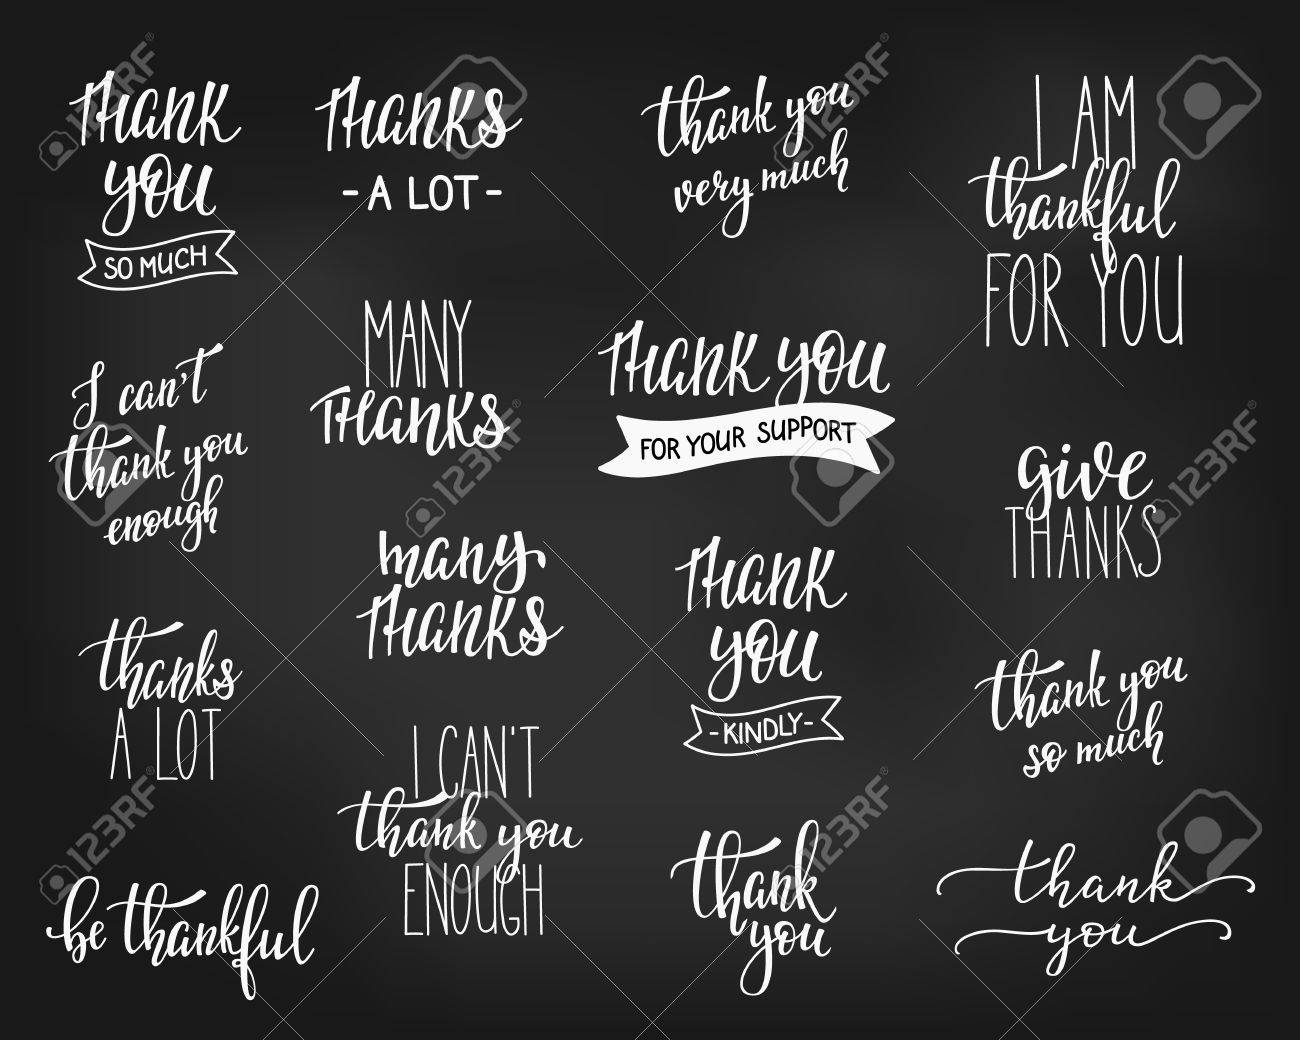 Thank You Friendship Family Positive Quote Thanksgiving Lettering.  Calligraphy Postcard Graphic Design Typography Element.